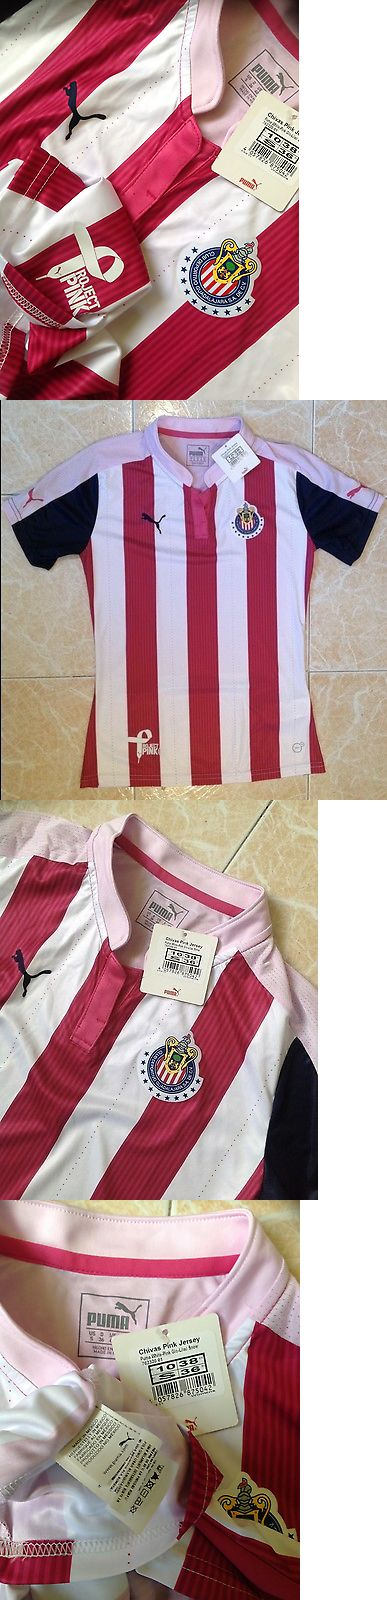 Women 159098: Puma Chivas Project Pink Womens Jersey Tigres Xolos Toluca Rayados Pumas America -> BUY IT NOW ONLY: $89.99 on eBay!